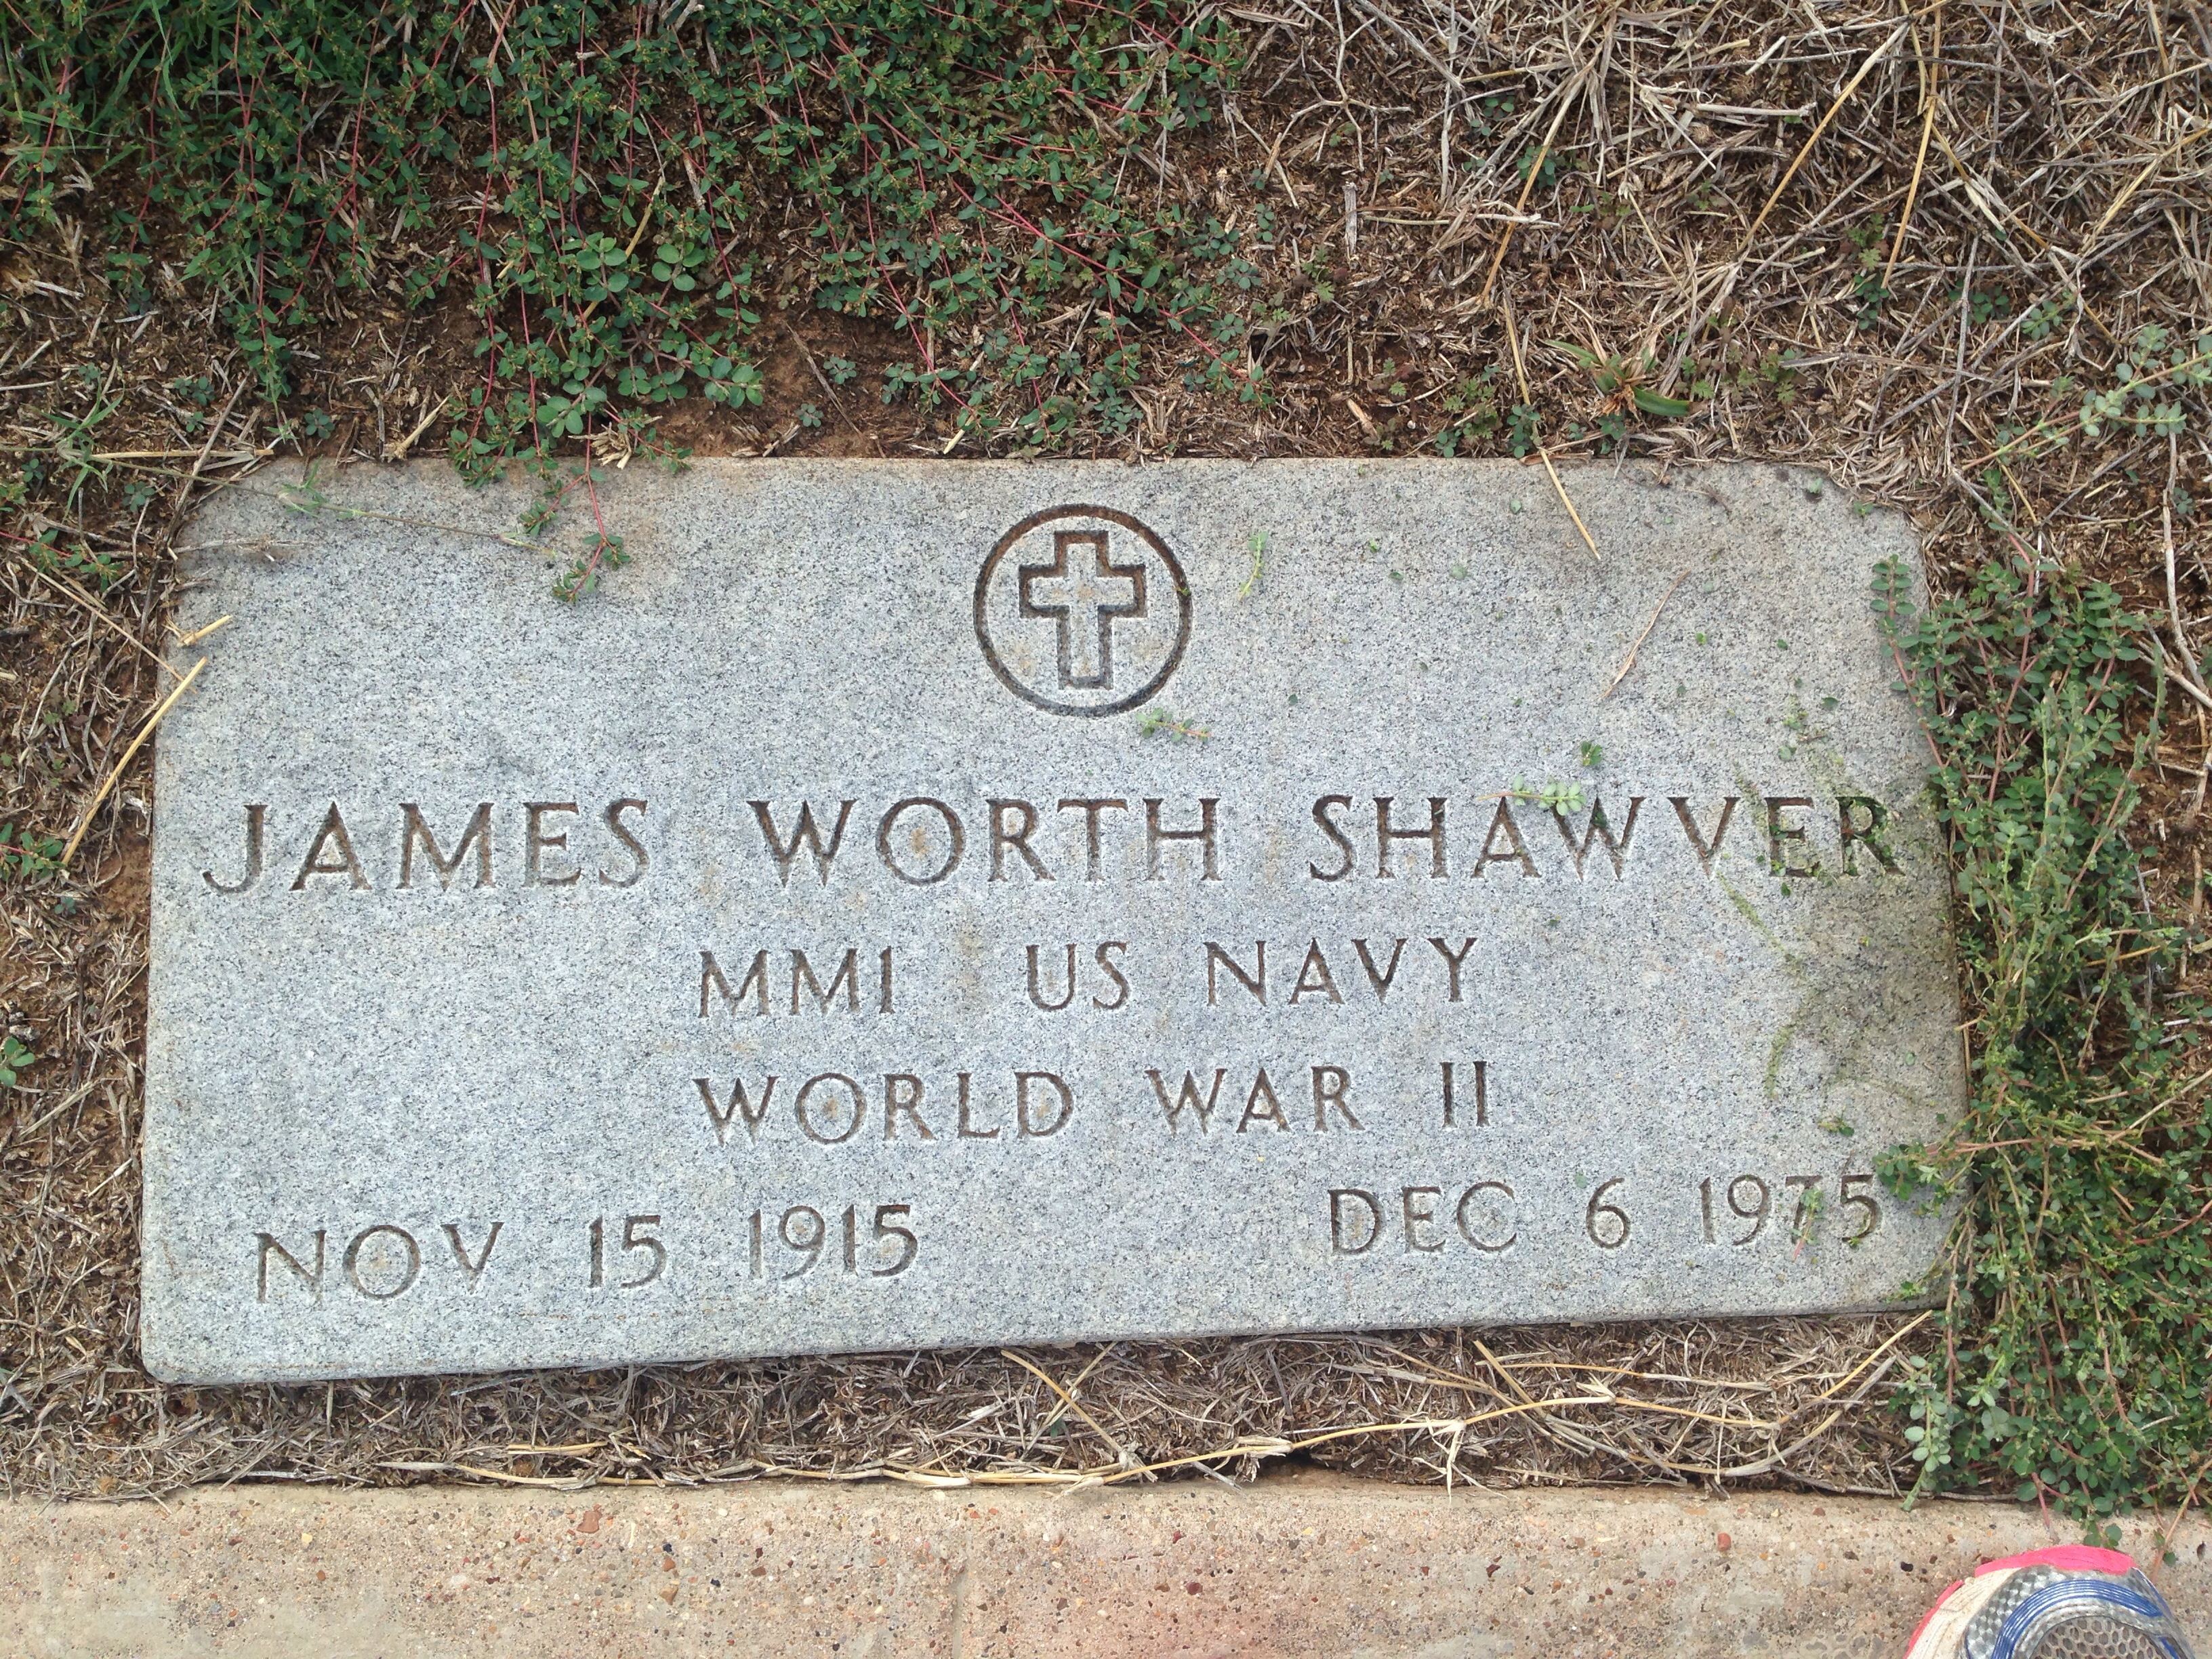 James Worth Shawver